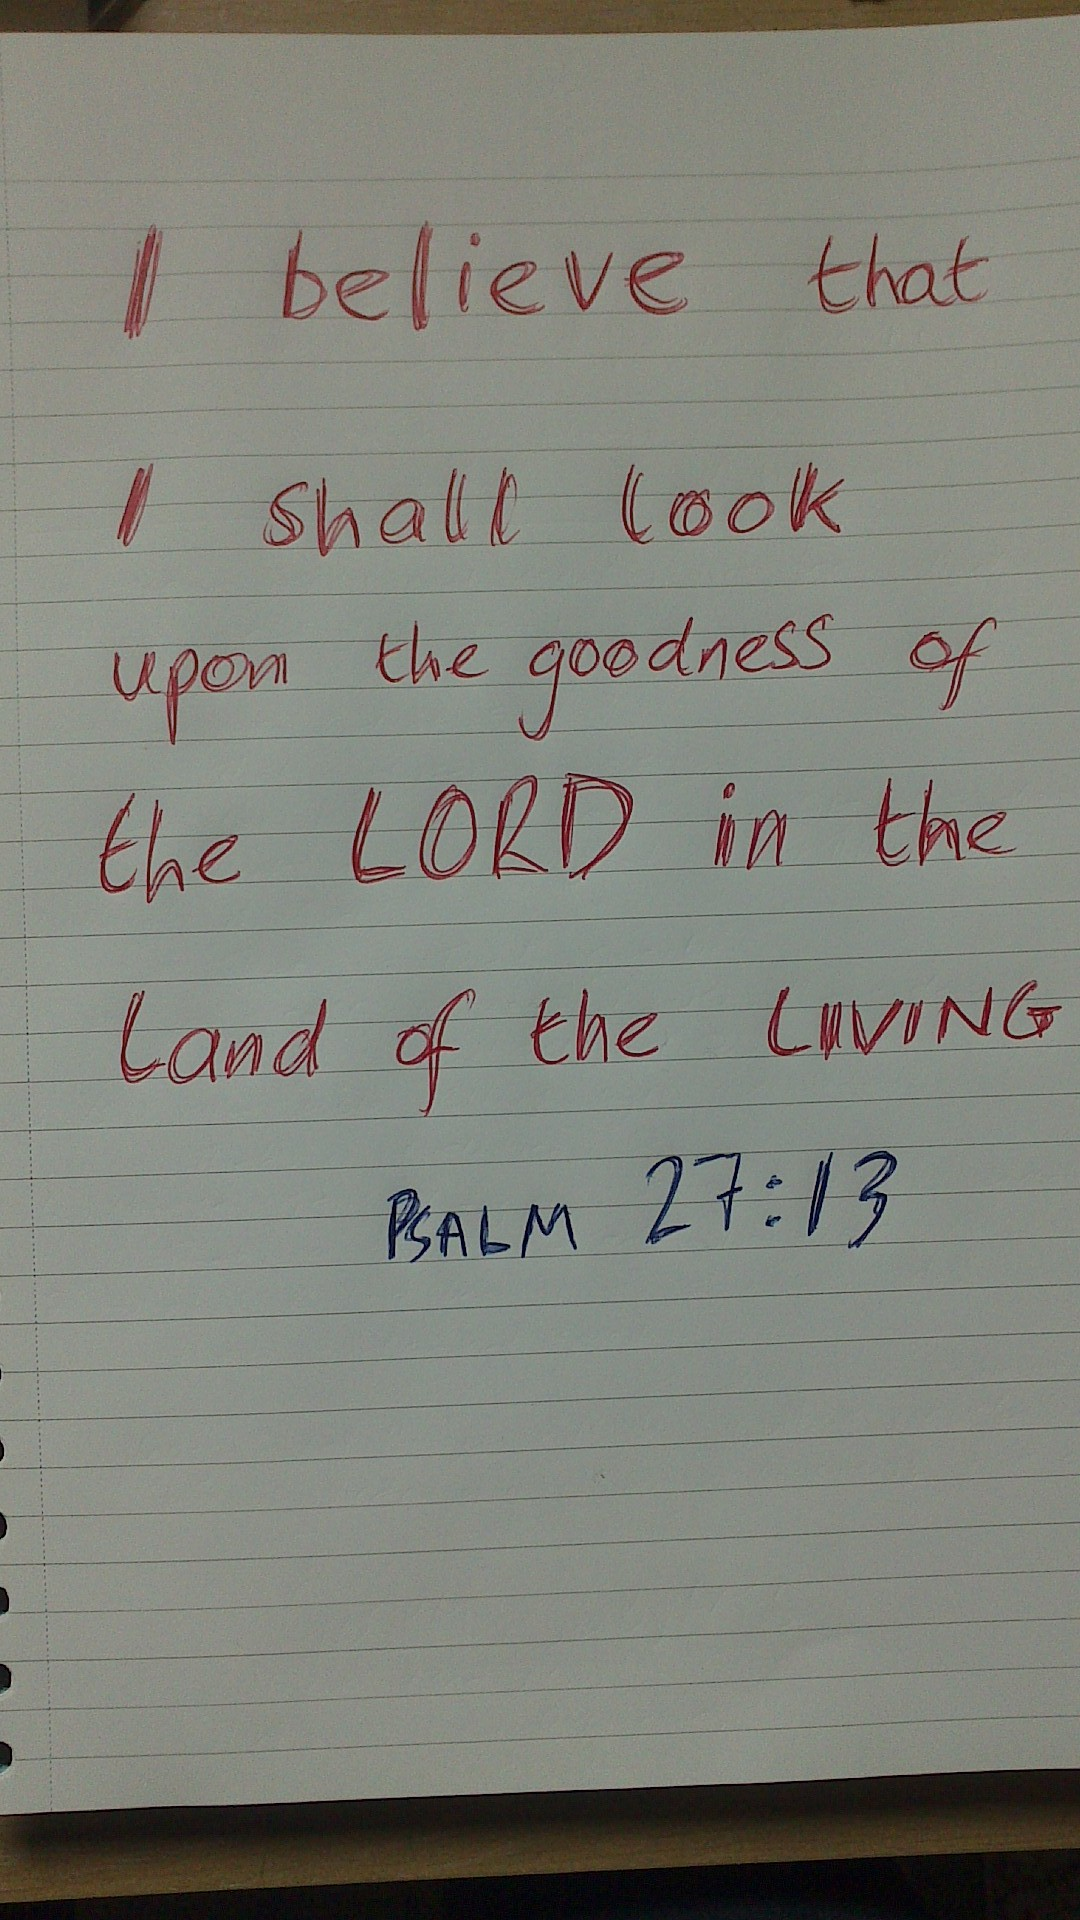 "... the goodness of the LORD in the land of the living!"" Psalm 27:13"